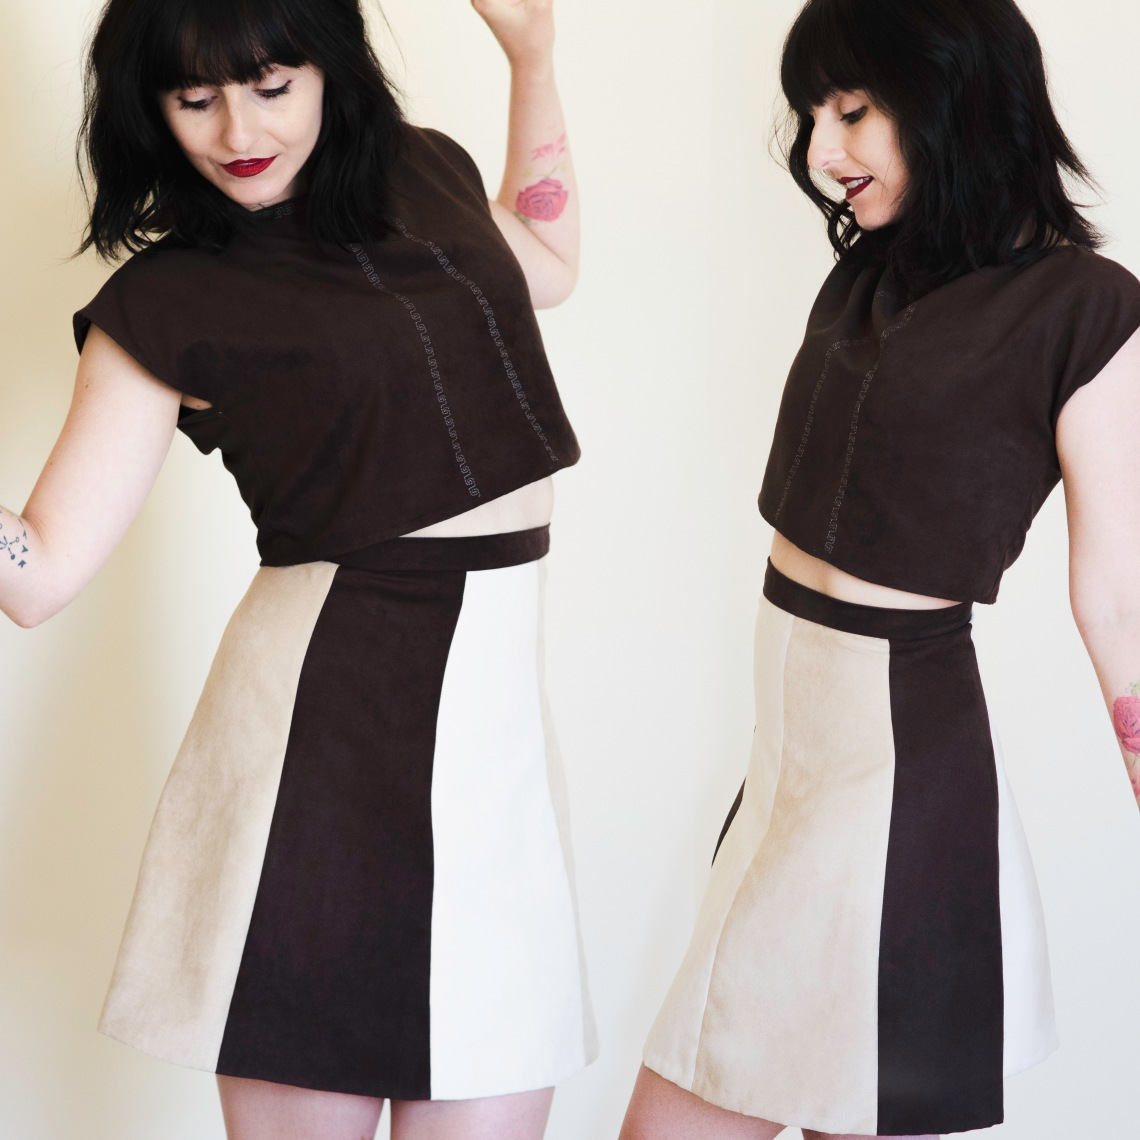 vegan-suede-skirt-top-06